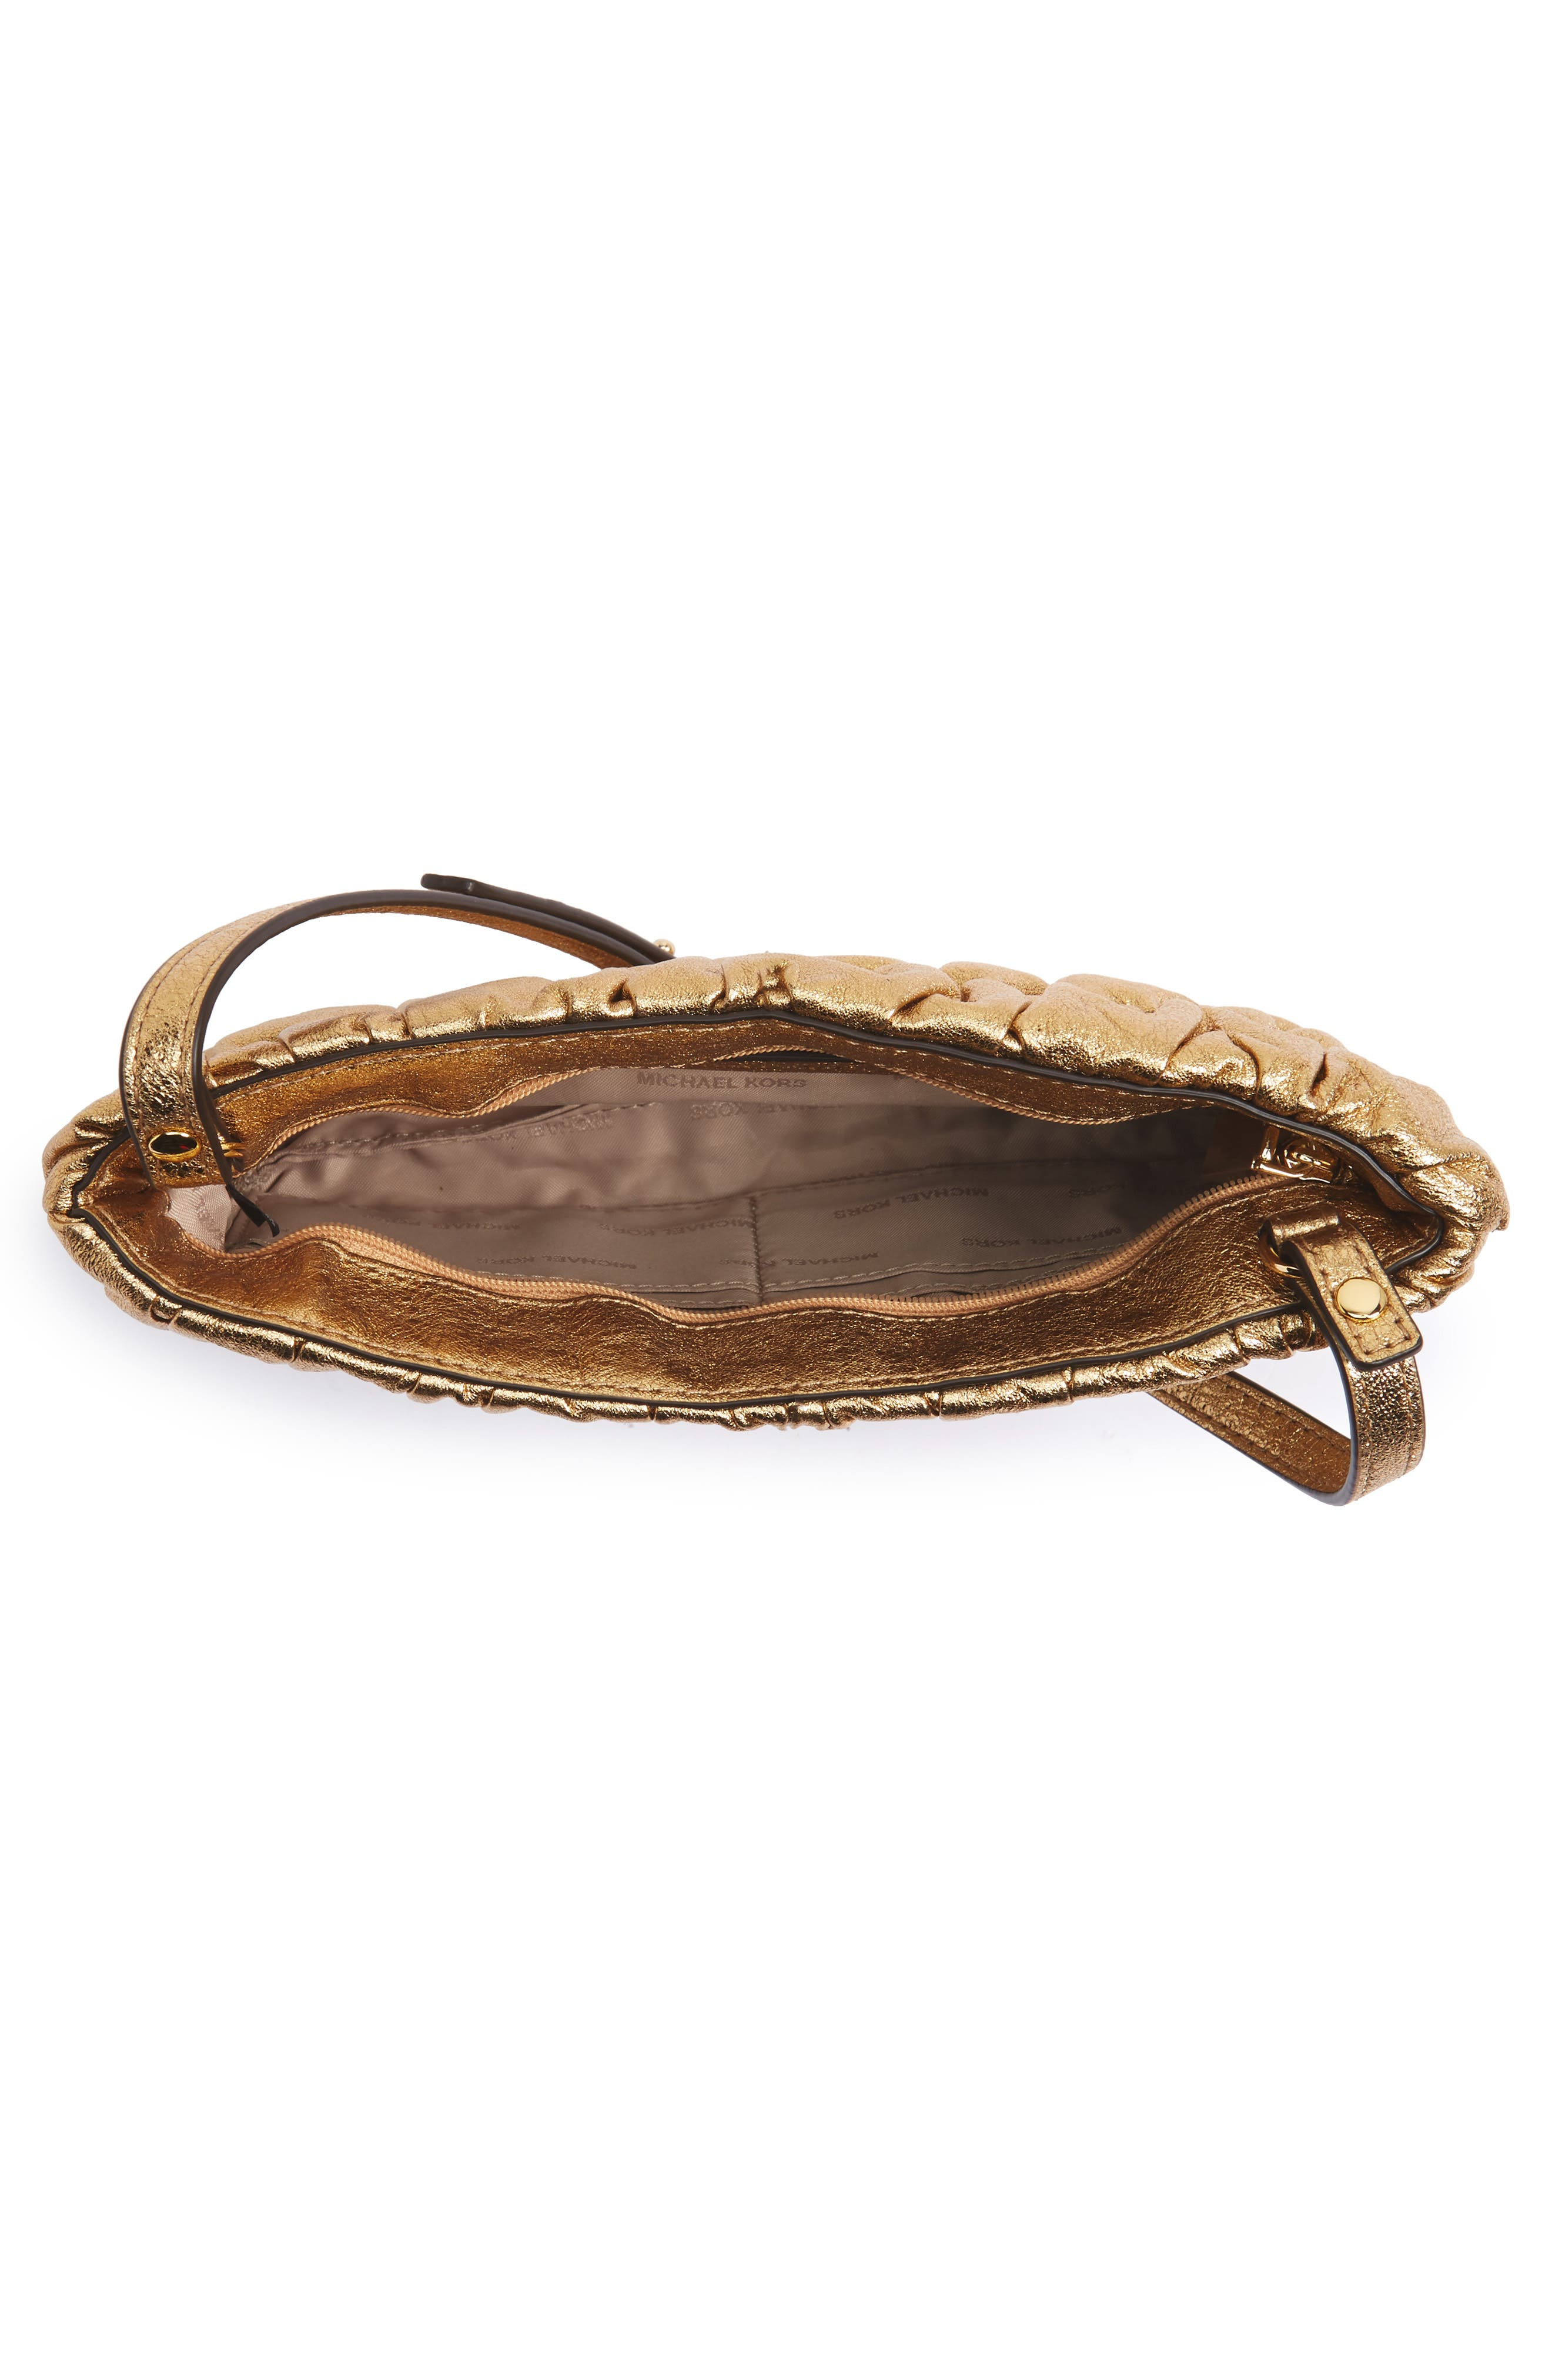 MICHAEL Michael Kors Webster Metallic Leather Clutch,                             Alternate thumbnail 4, color,                             Gold